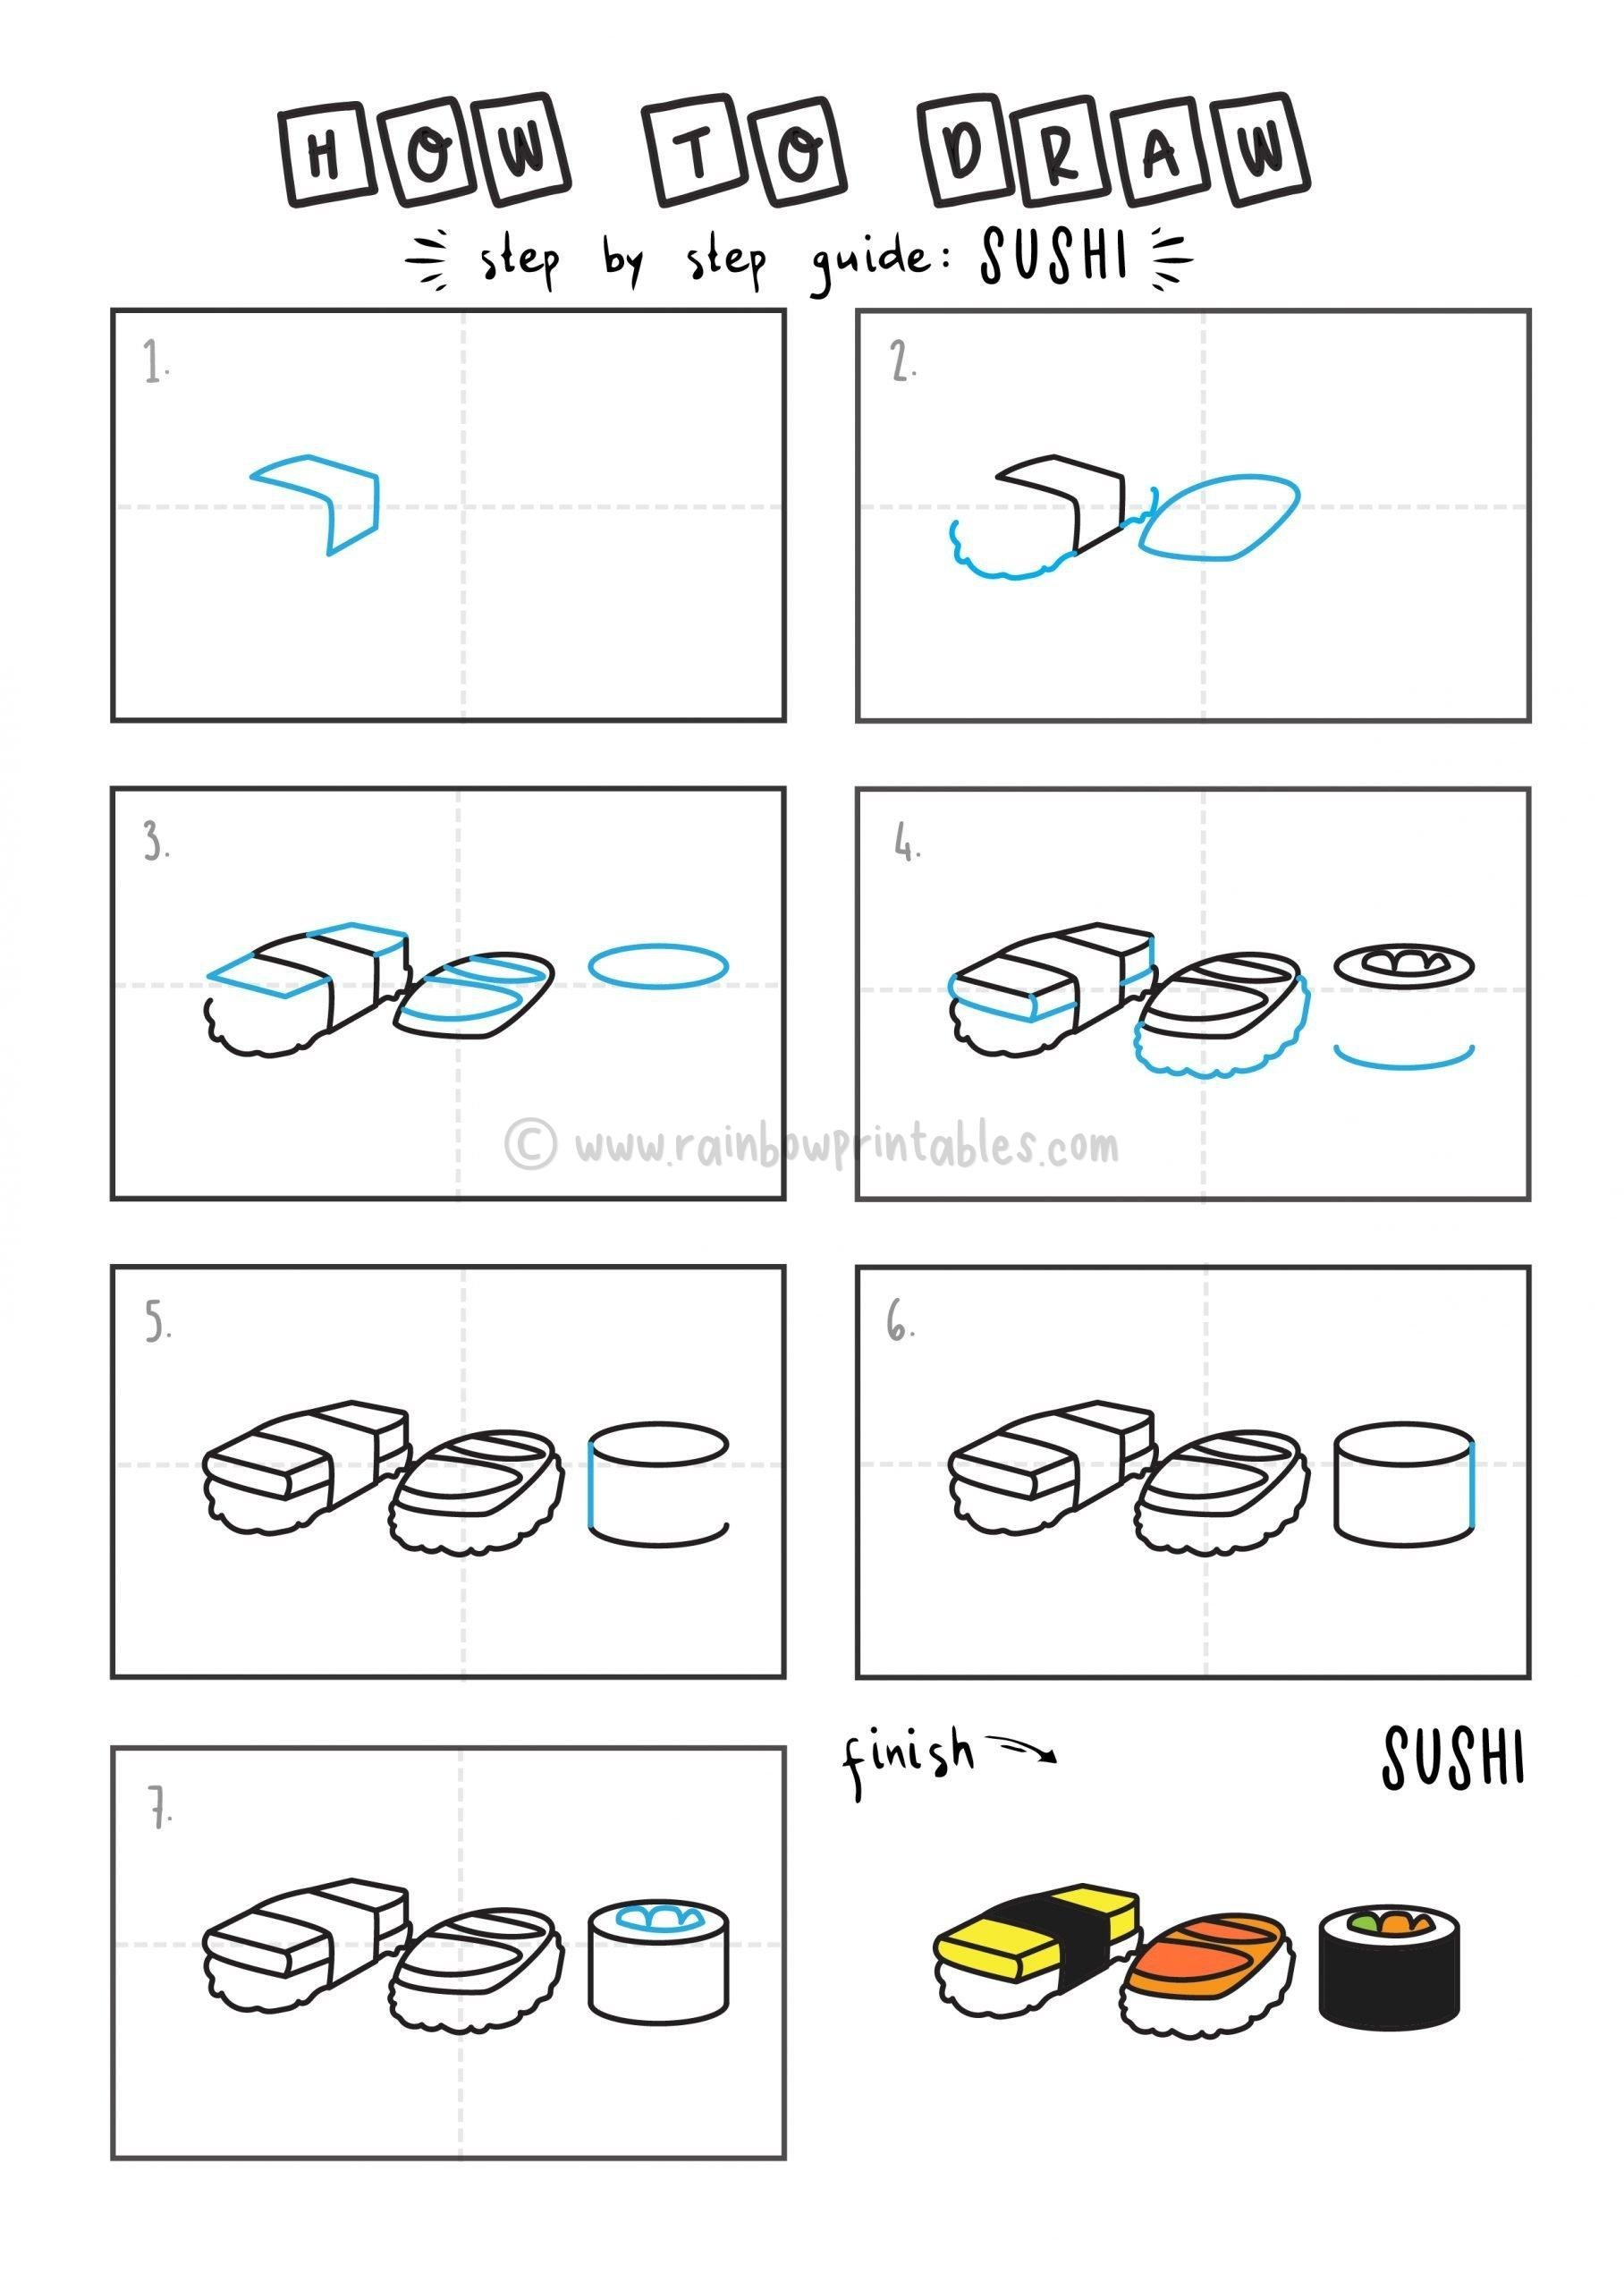 How to Draw sushi arts tutorial step by step for kids